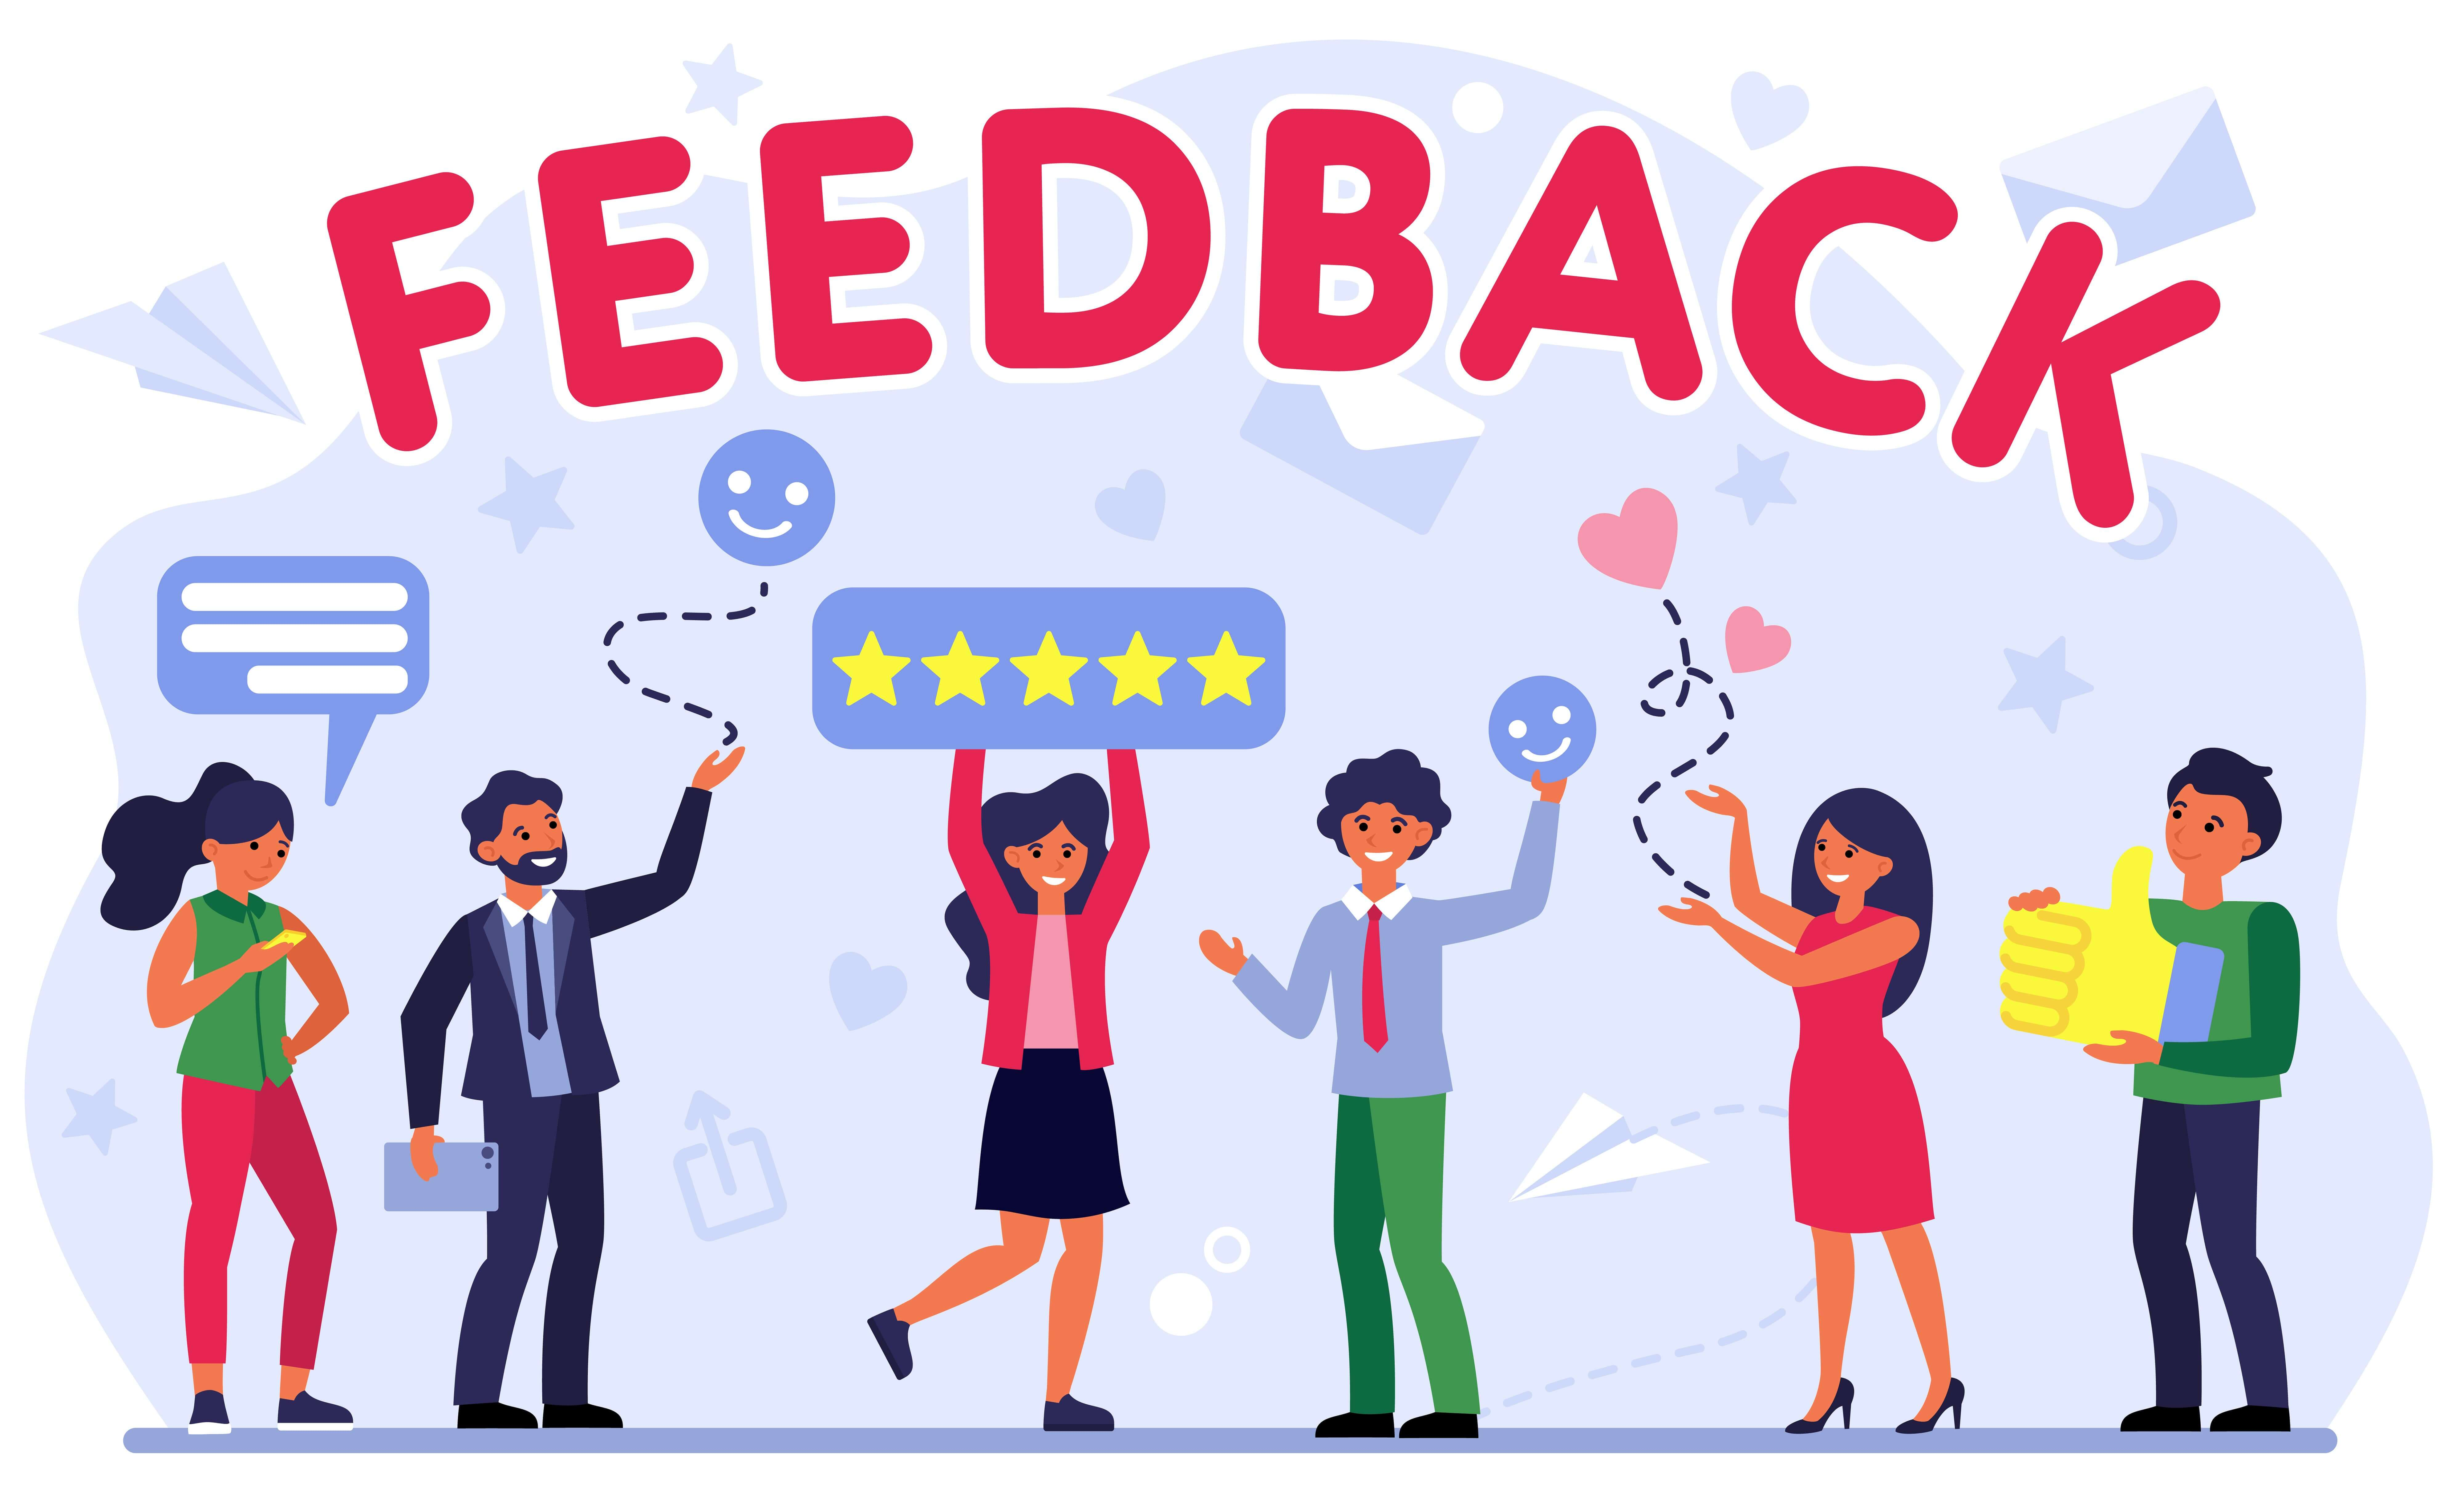 Receiving Good Feedback is Conducive to Your Brand